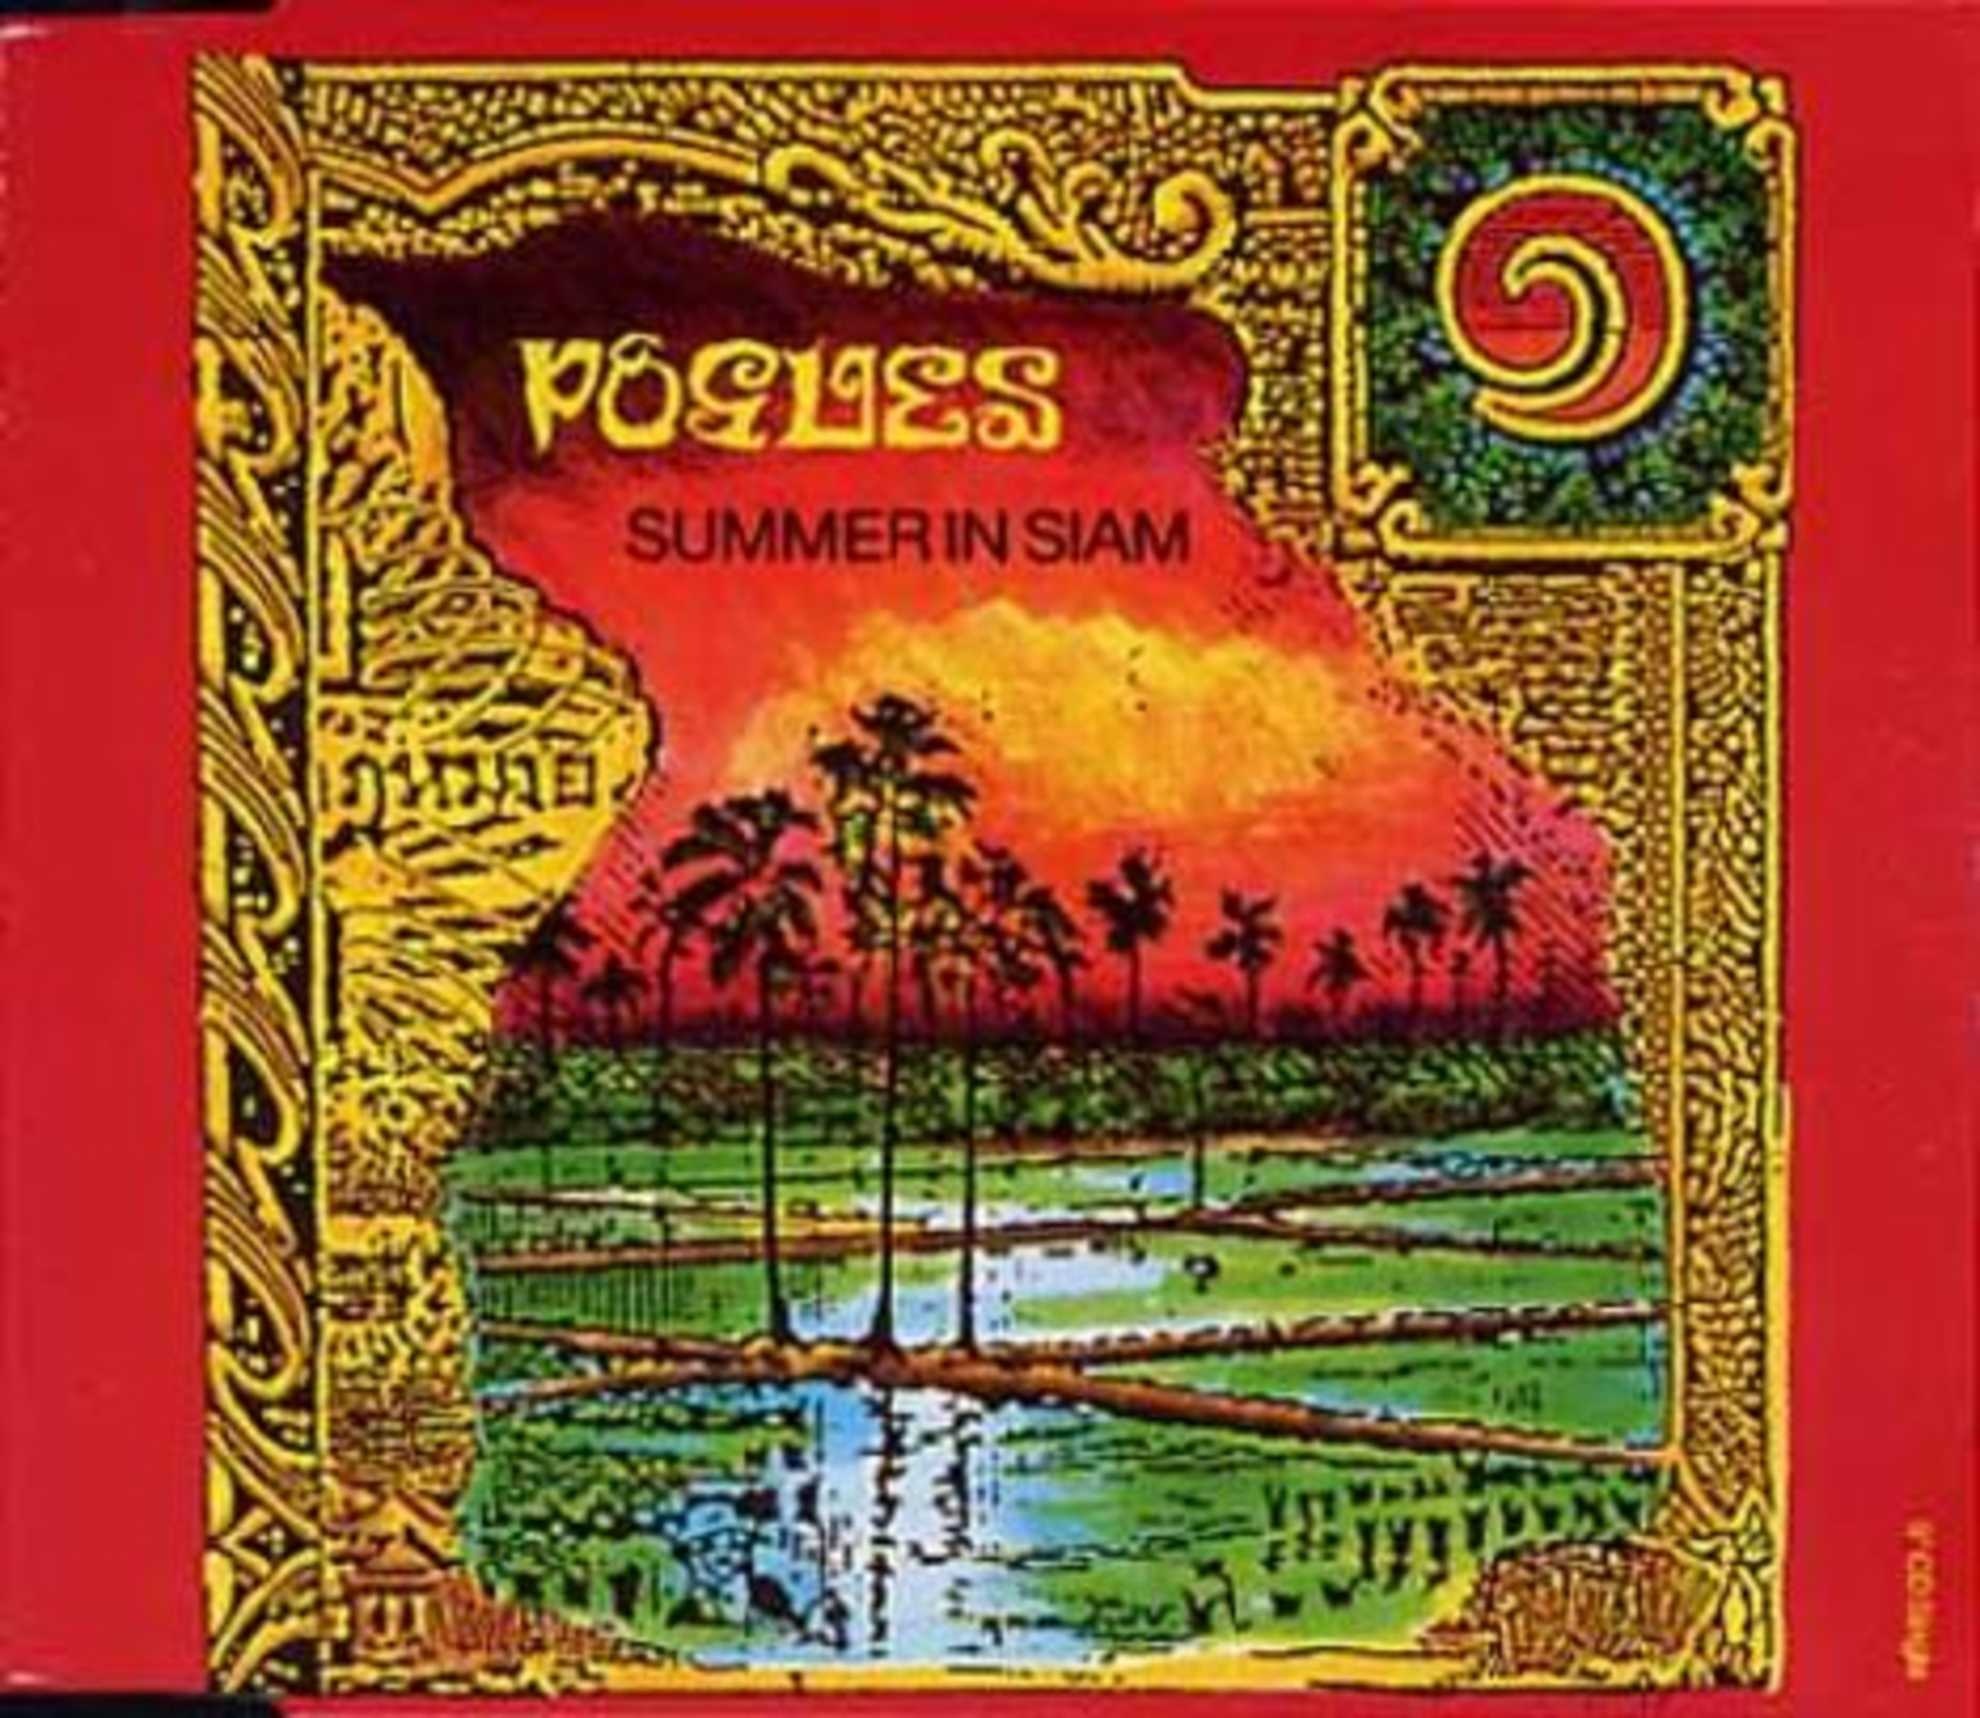 Pogues - Summer in Siam